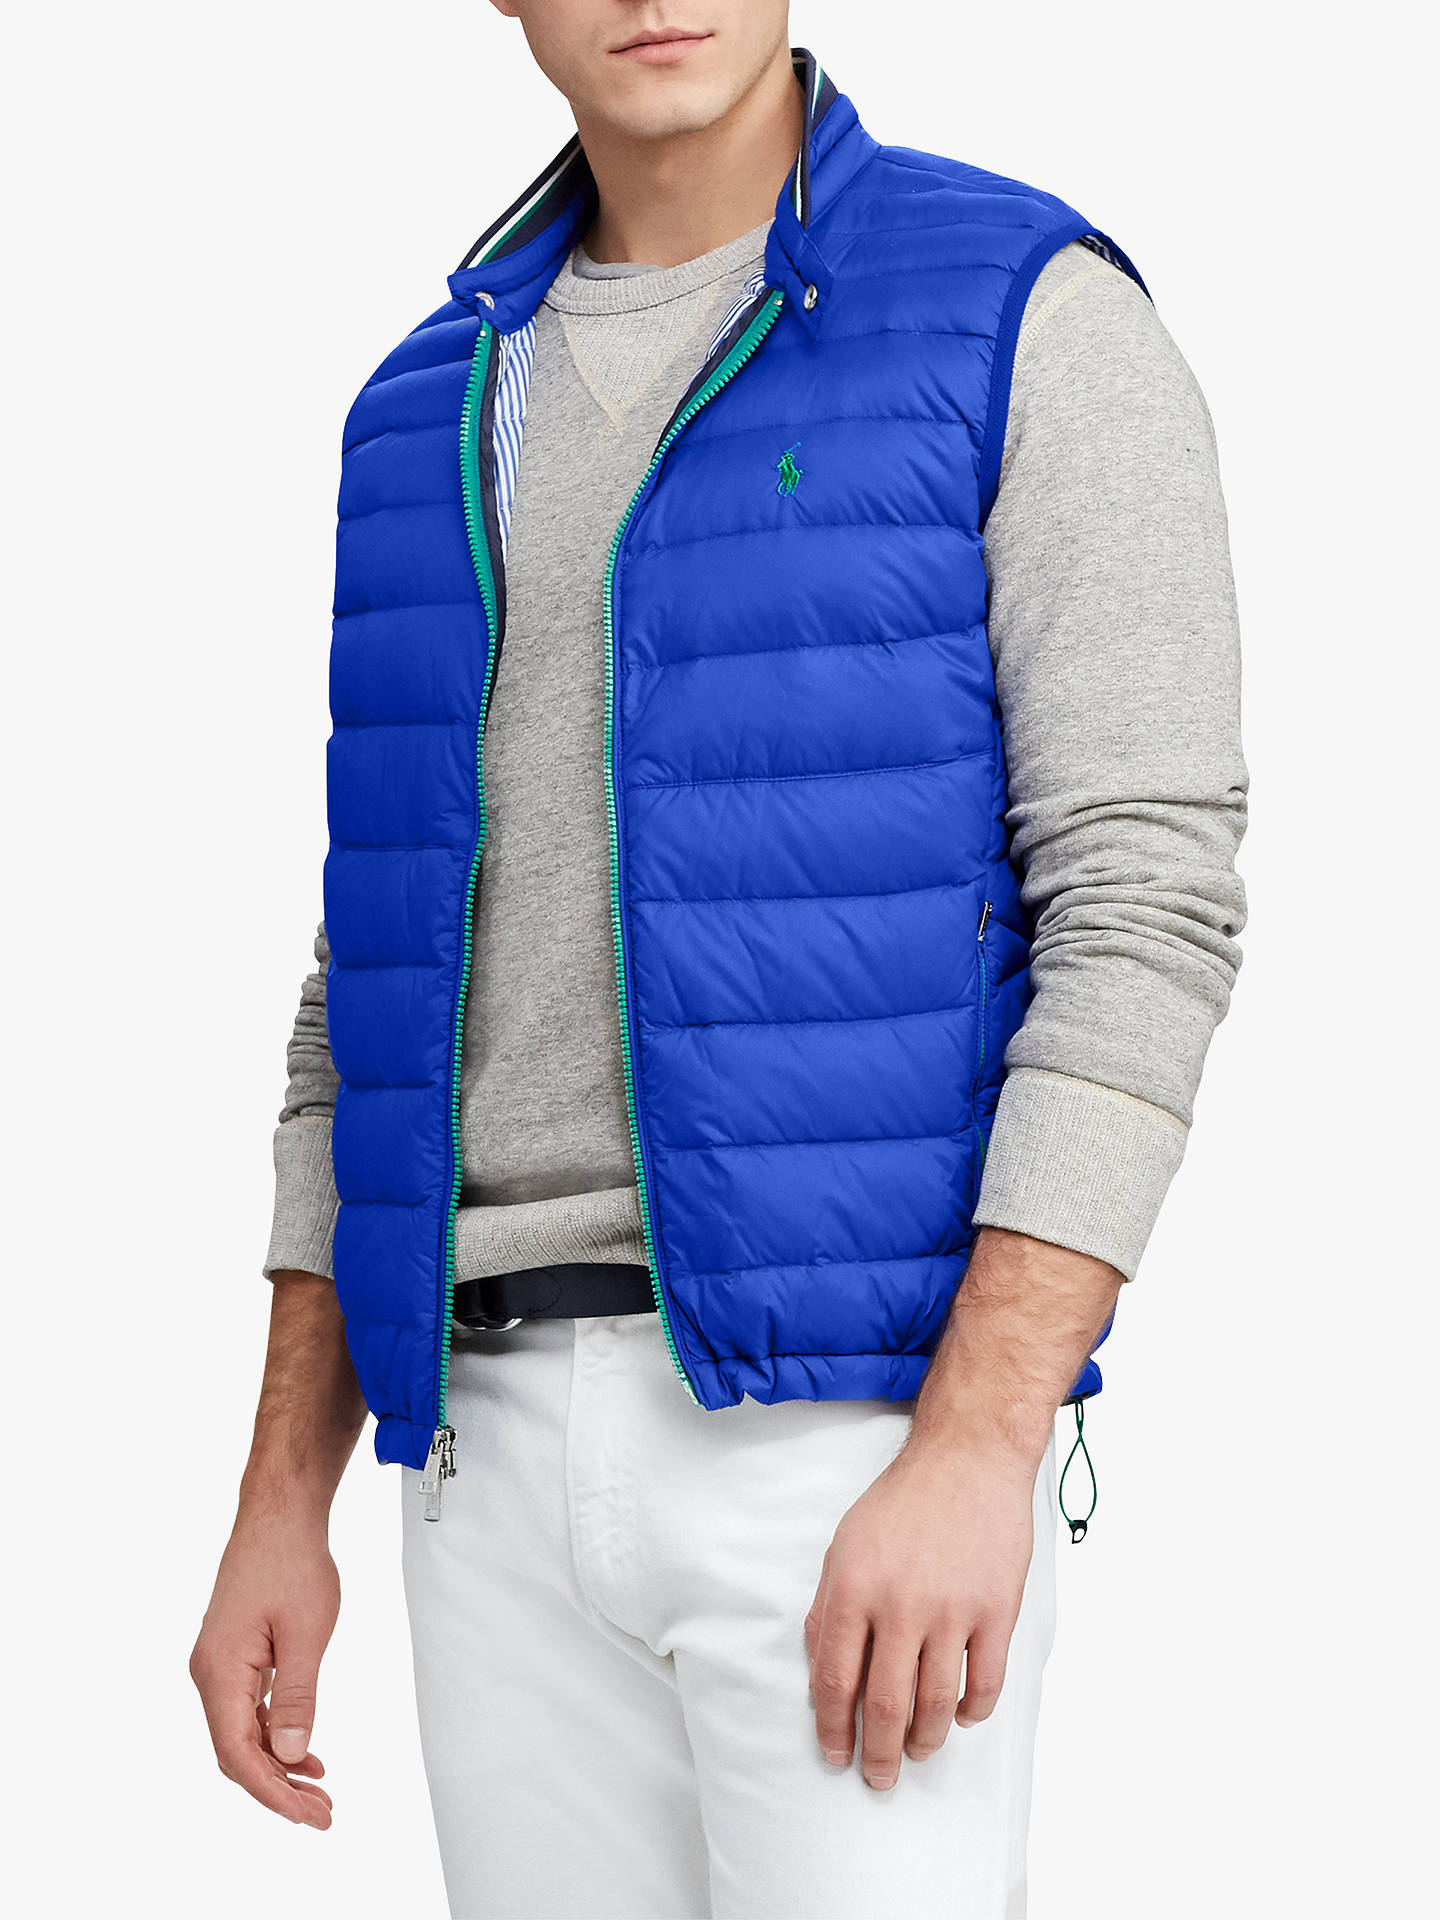 Star John Lauren Packable Down Ralph GiletSapphire At Polo Quilted roCdtshQxB